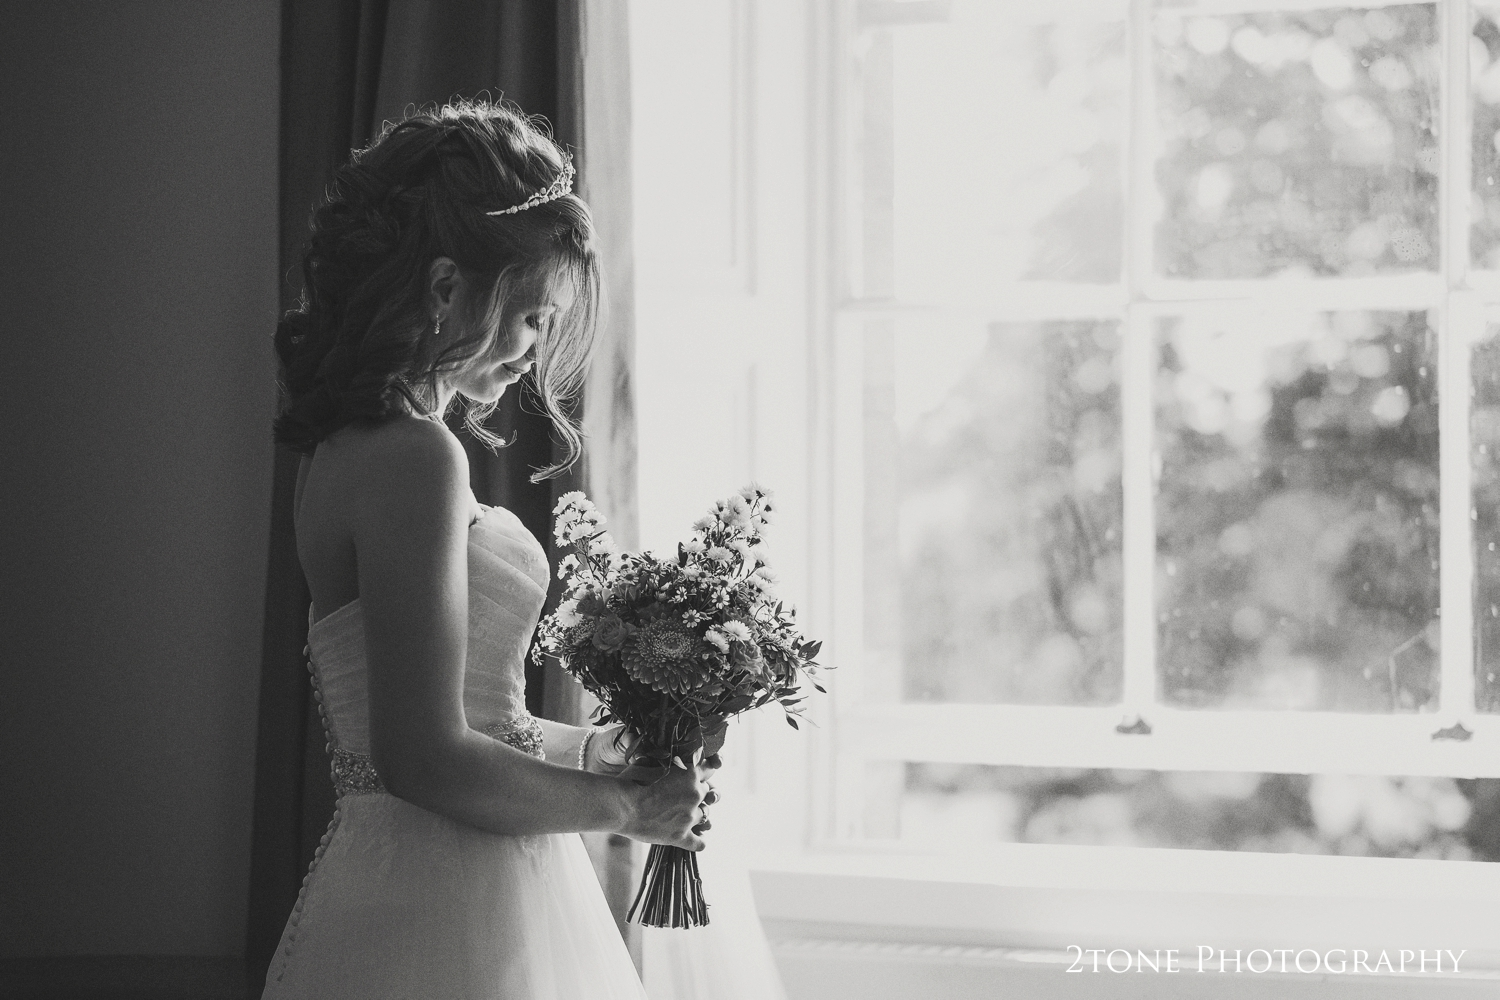 I love this pretty portrait of Nicola standing in the window of the bridal suite of Linden Hall.  The natural light catches her hair as it gently falls over her face, and with a thoughtful smile she is ready for the rest of the day to begin.